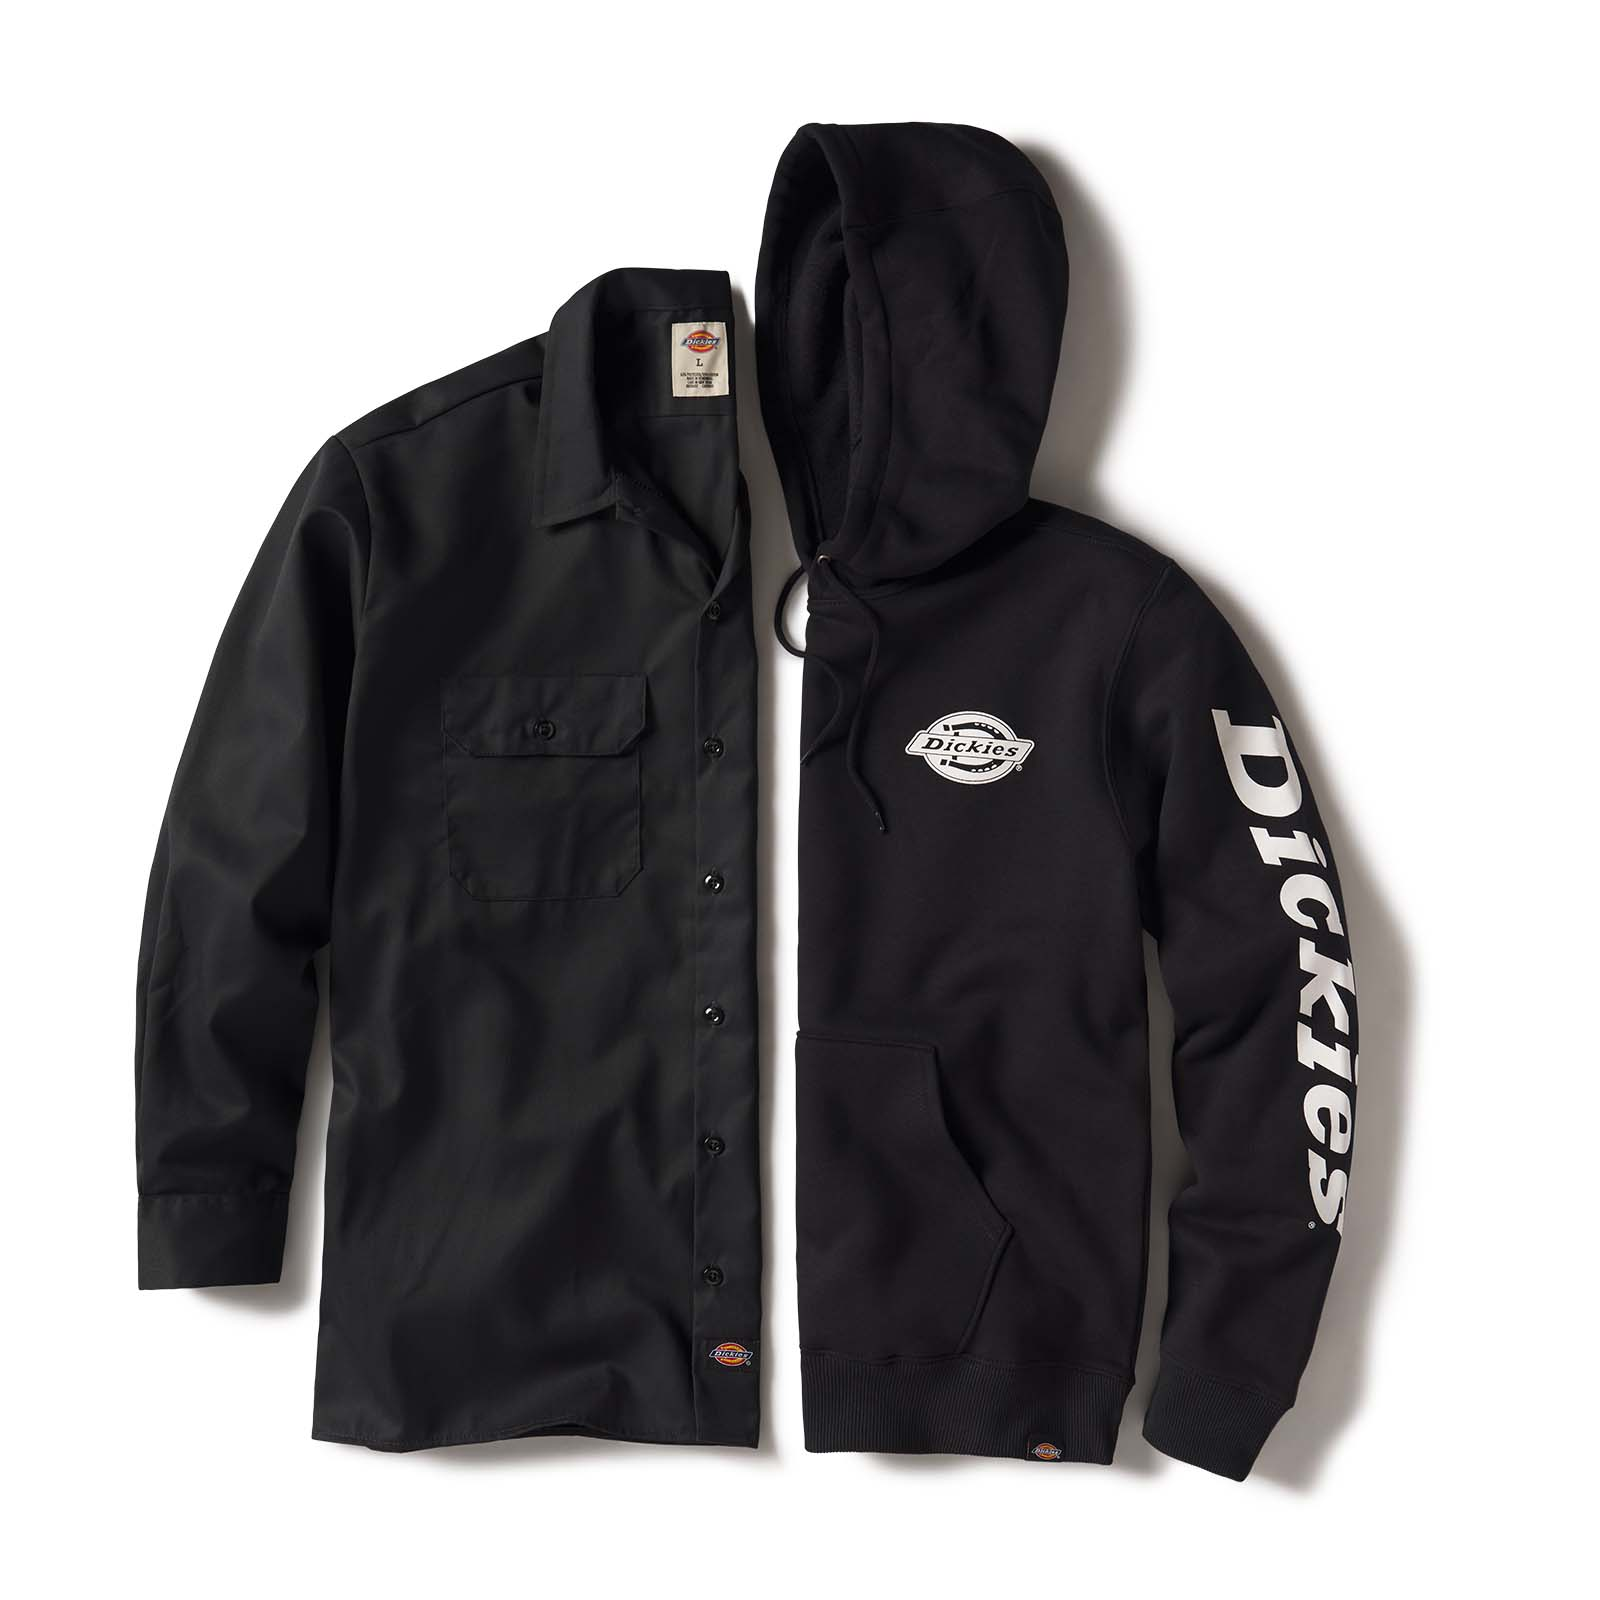 TILLYS-Editorial-Damion-Lloyd-Photography-Laydown-Commercial-Apparel-Product-Clothing-Art-Directed-Los-Angeles-Orange-County-jacket-dickies-hoodie